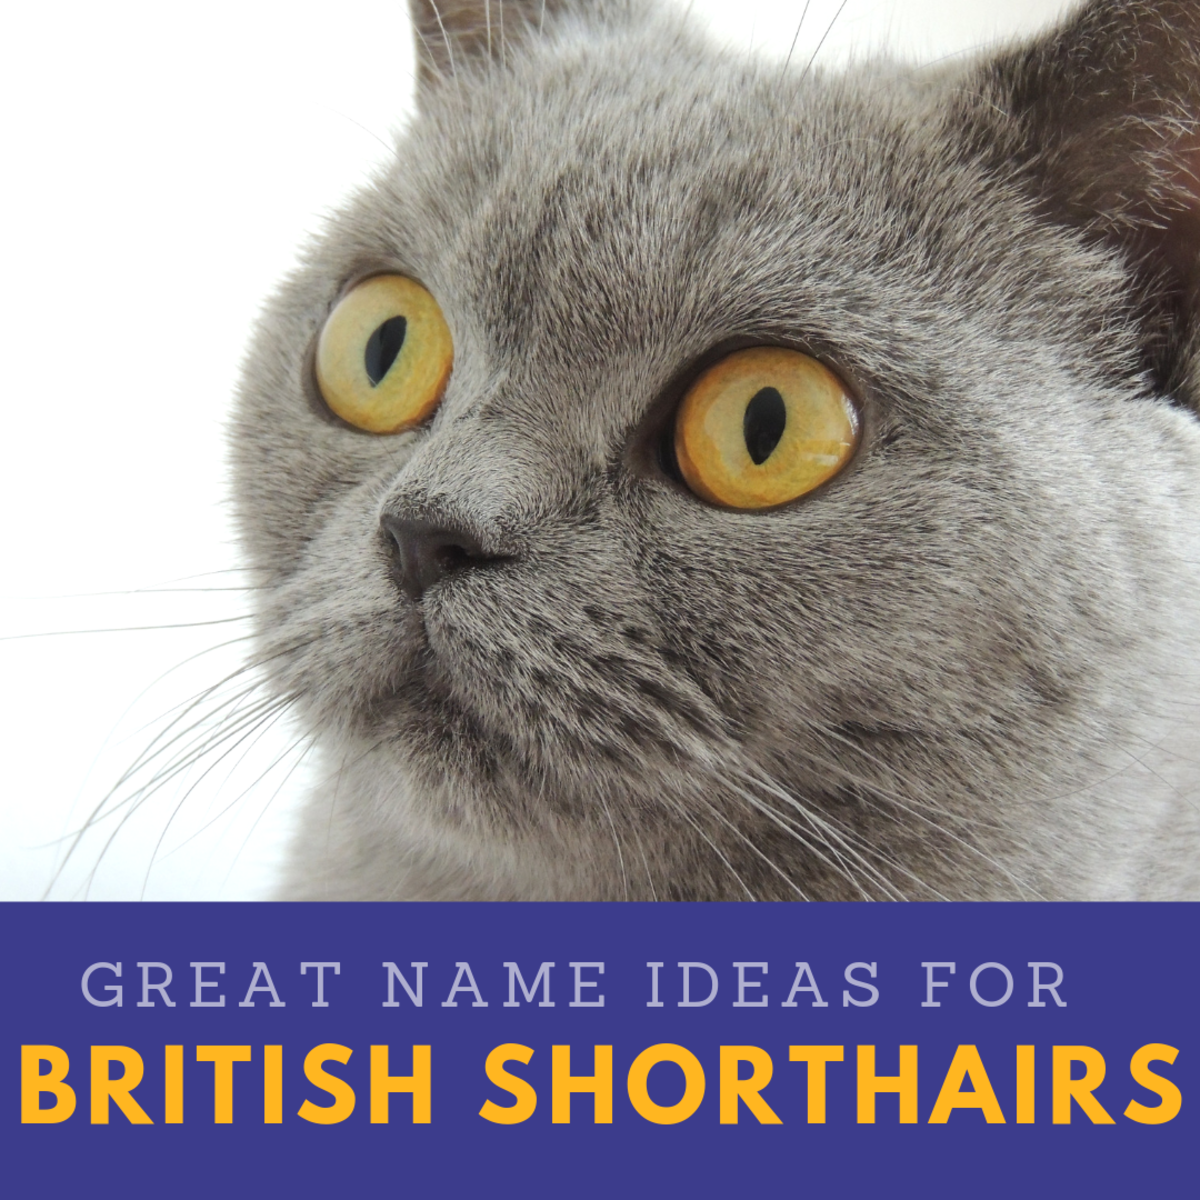 20 Great Names For Your British Shorthair Cat From Literature Mythology And Folklore Pethelpful By Fellow Animal Lovers And Experts